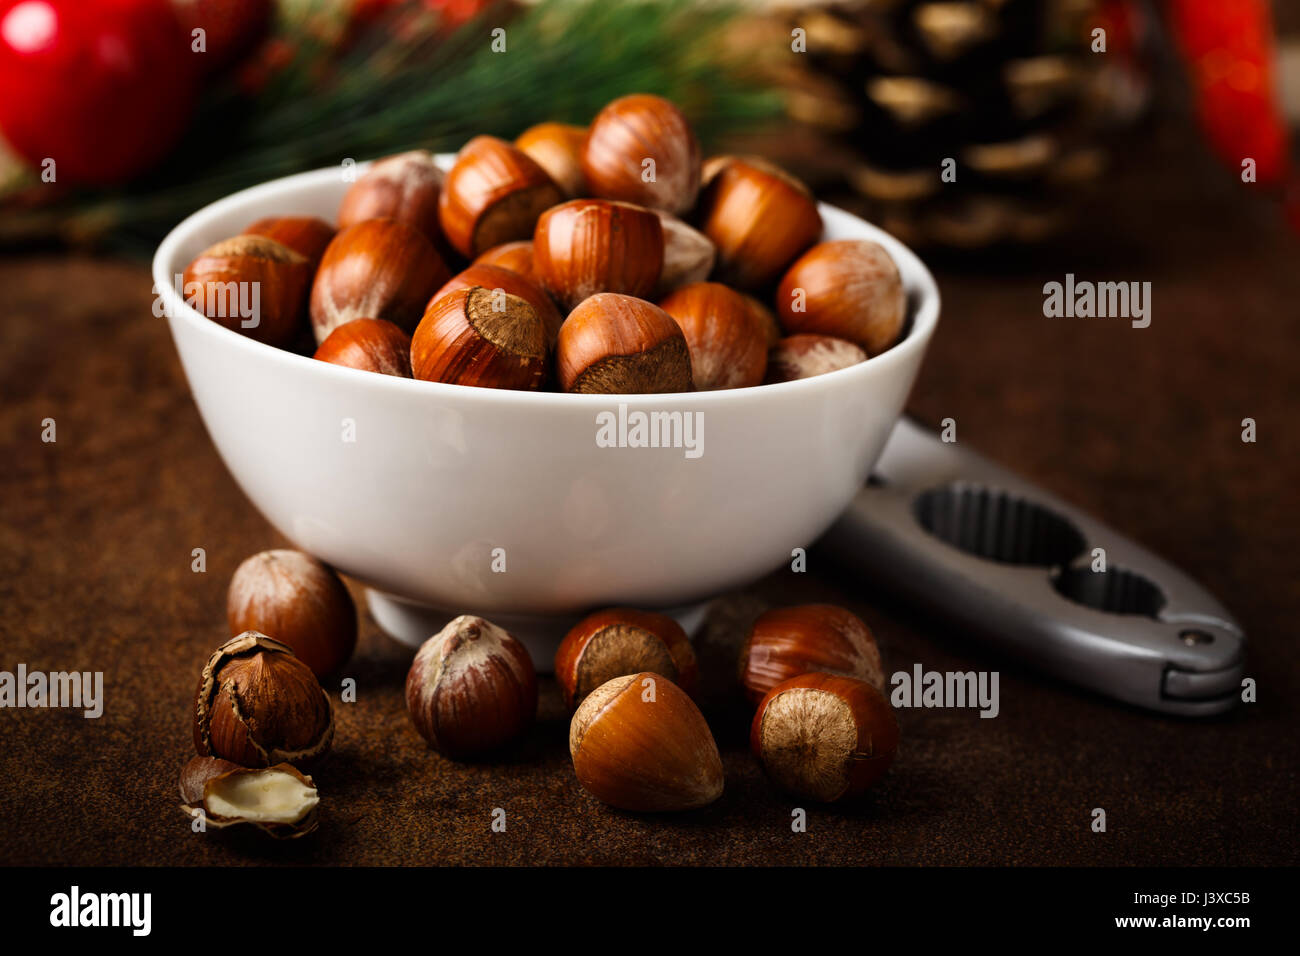 fresh hazelnuts served in a white bowl - Stock Image